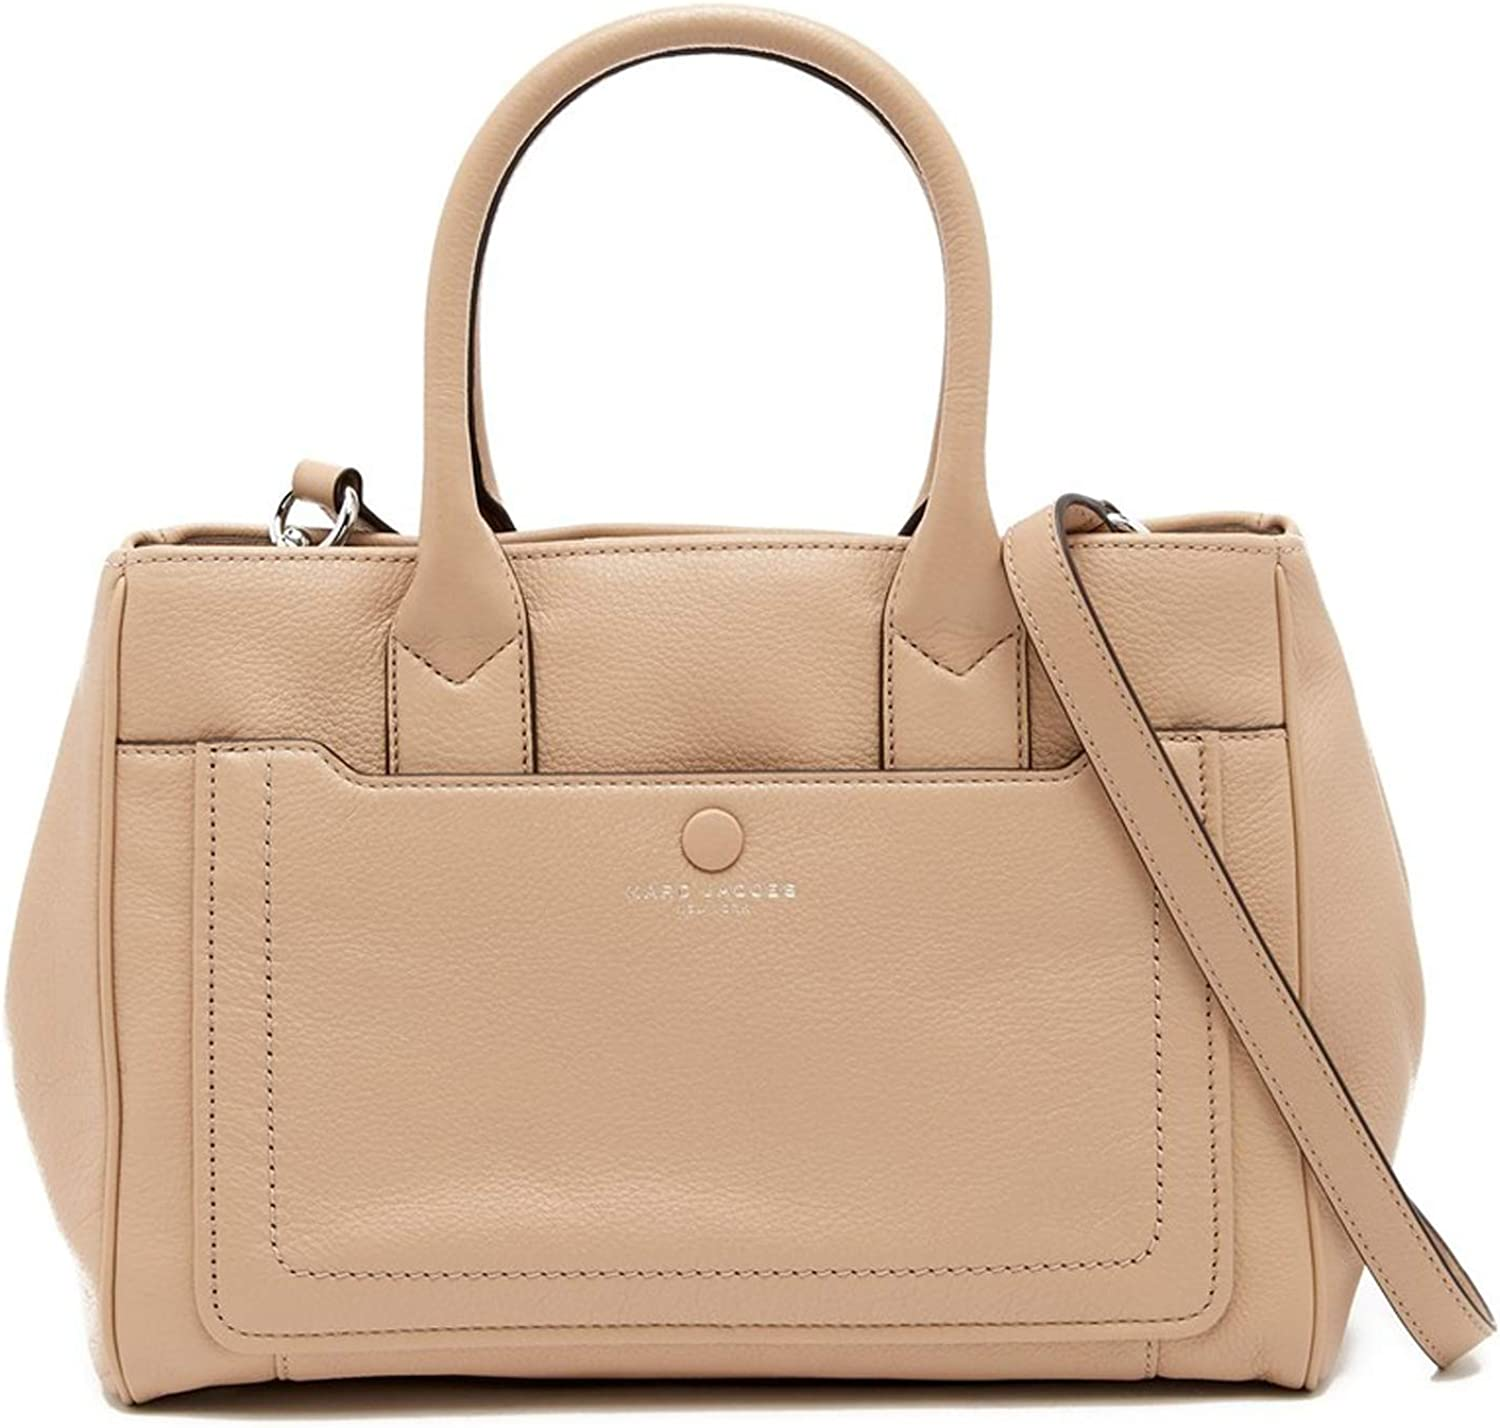 Marc Jacobs Empire City Leather Tote, Sandstone